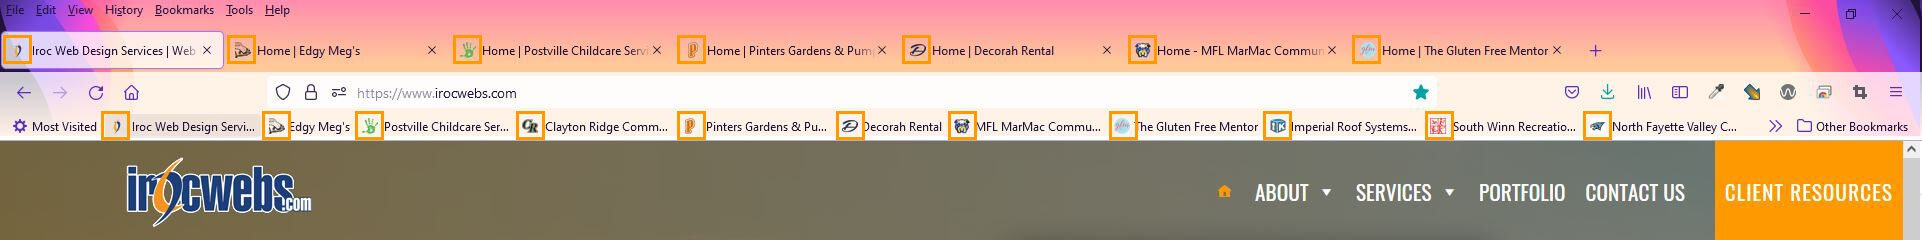 Example of favicons in Firefox browser window